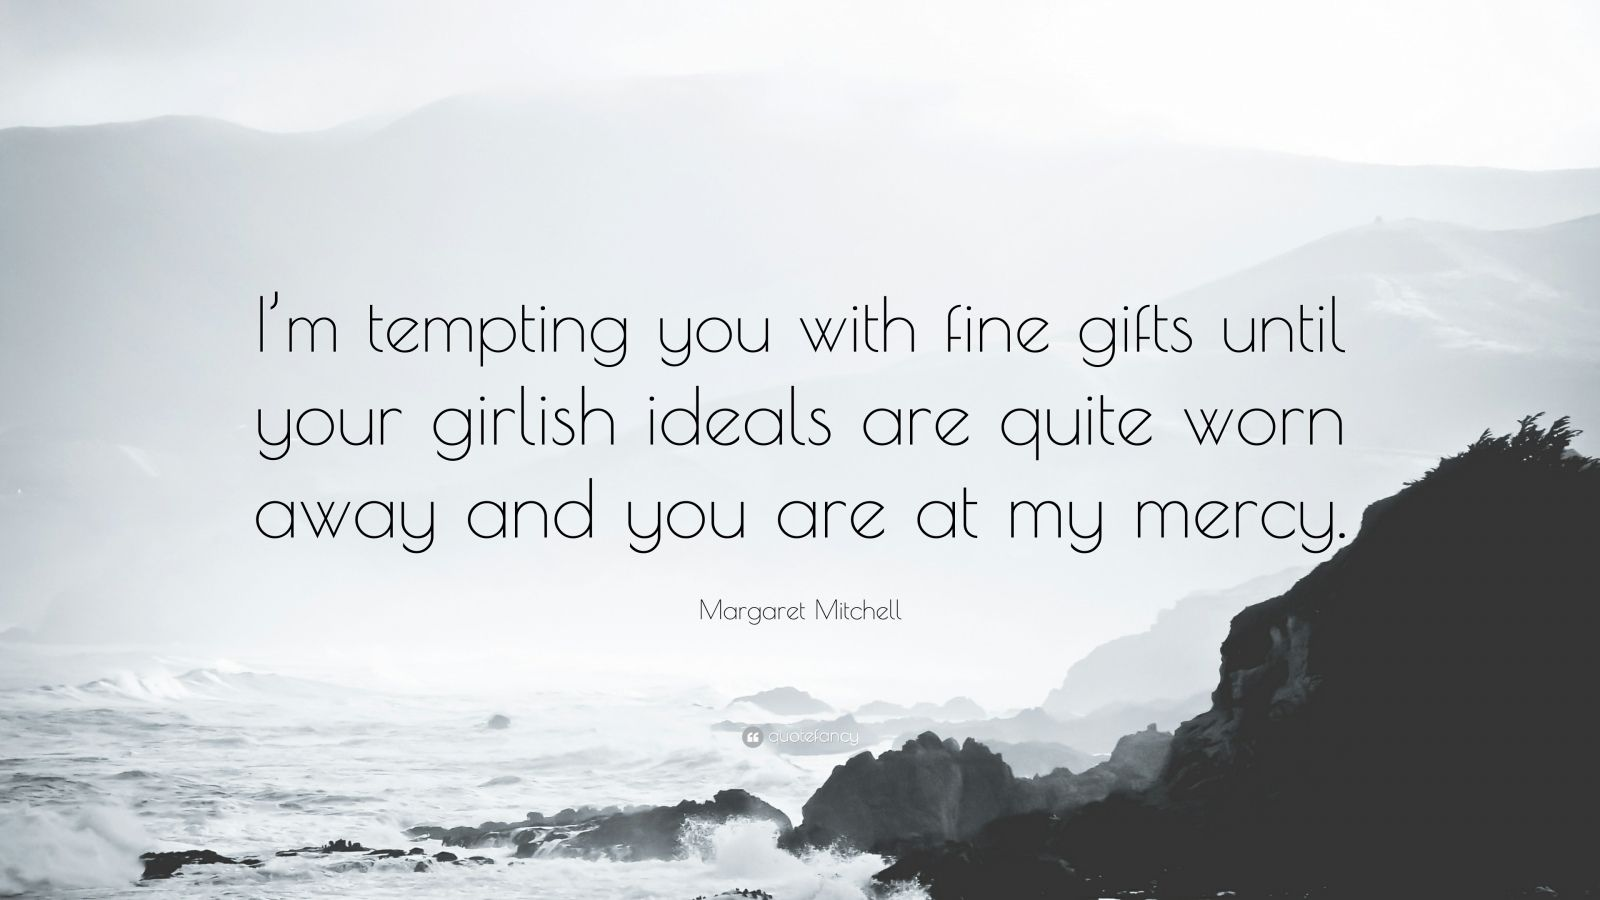 """Margaret Mitchell Quote: """"I'm tempting you with fine gifts until your girlish ideals are quite worn away and you are at my mercy."""""""